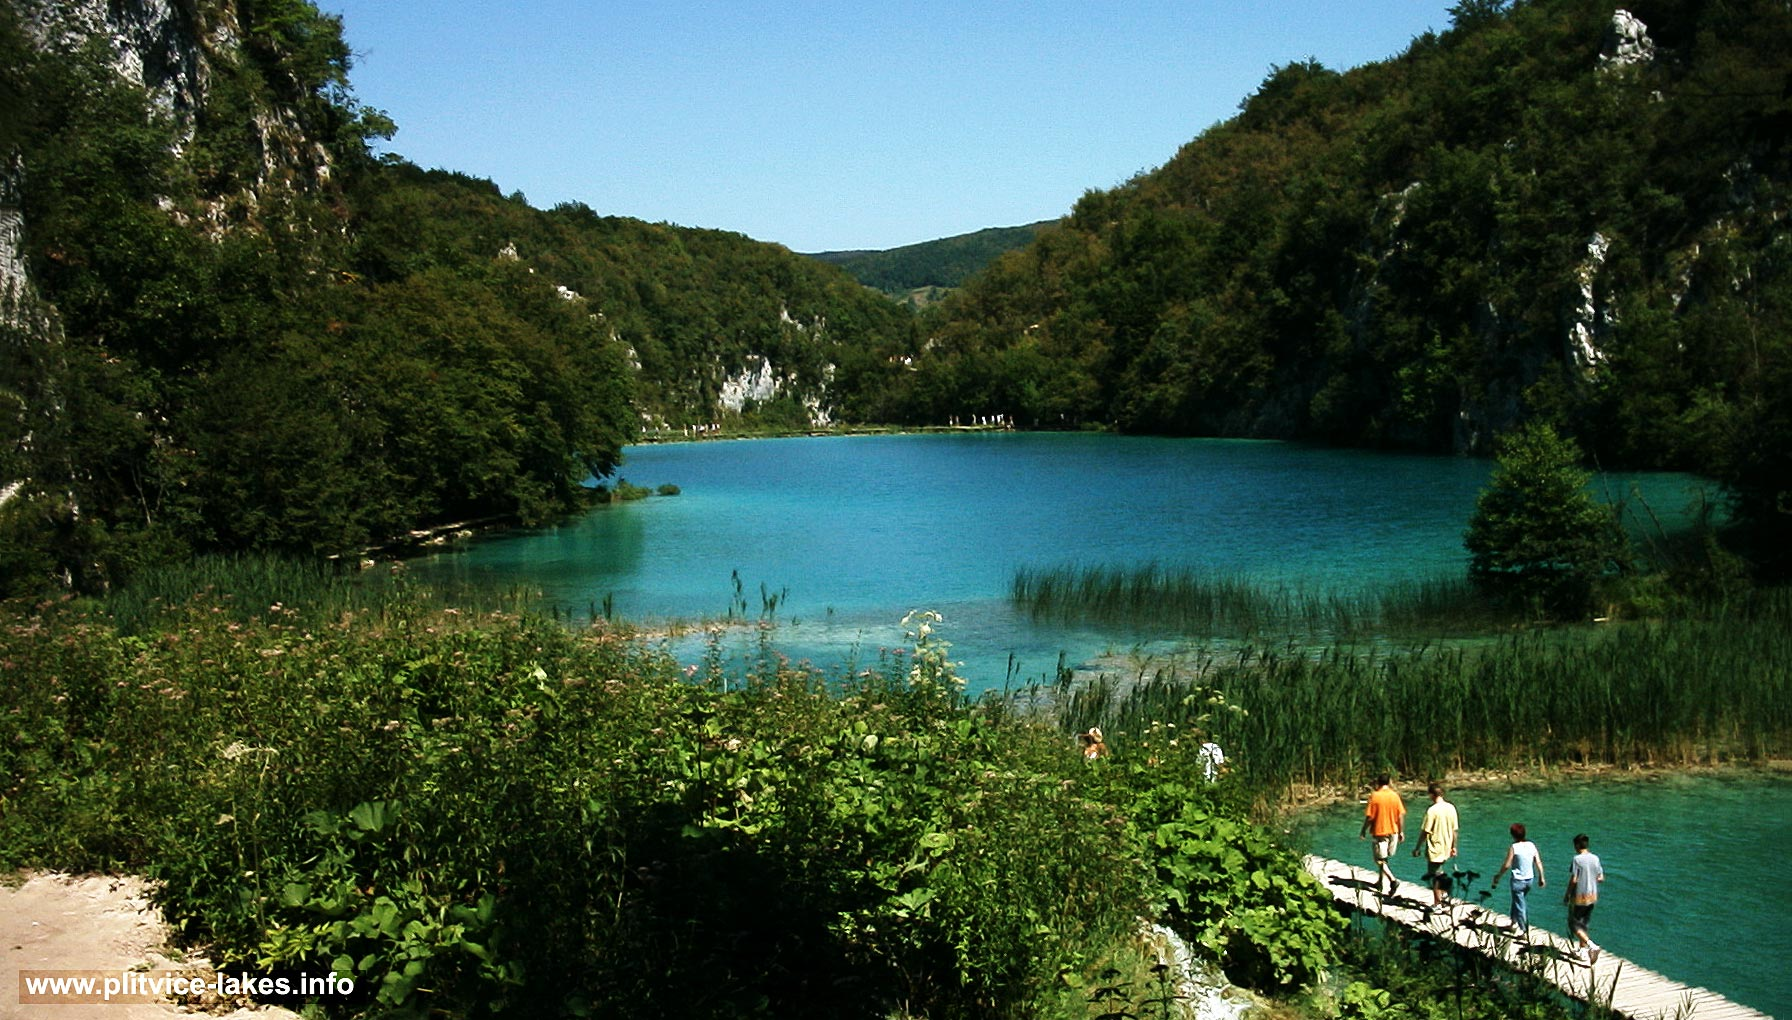 Approach to Kaluđerovac Jezero @ Plitvice Lakes, summer